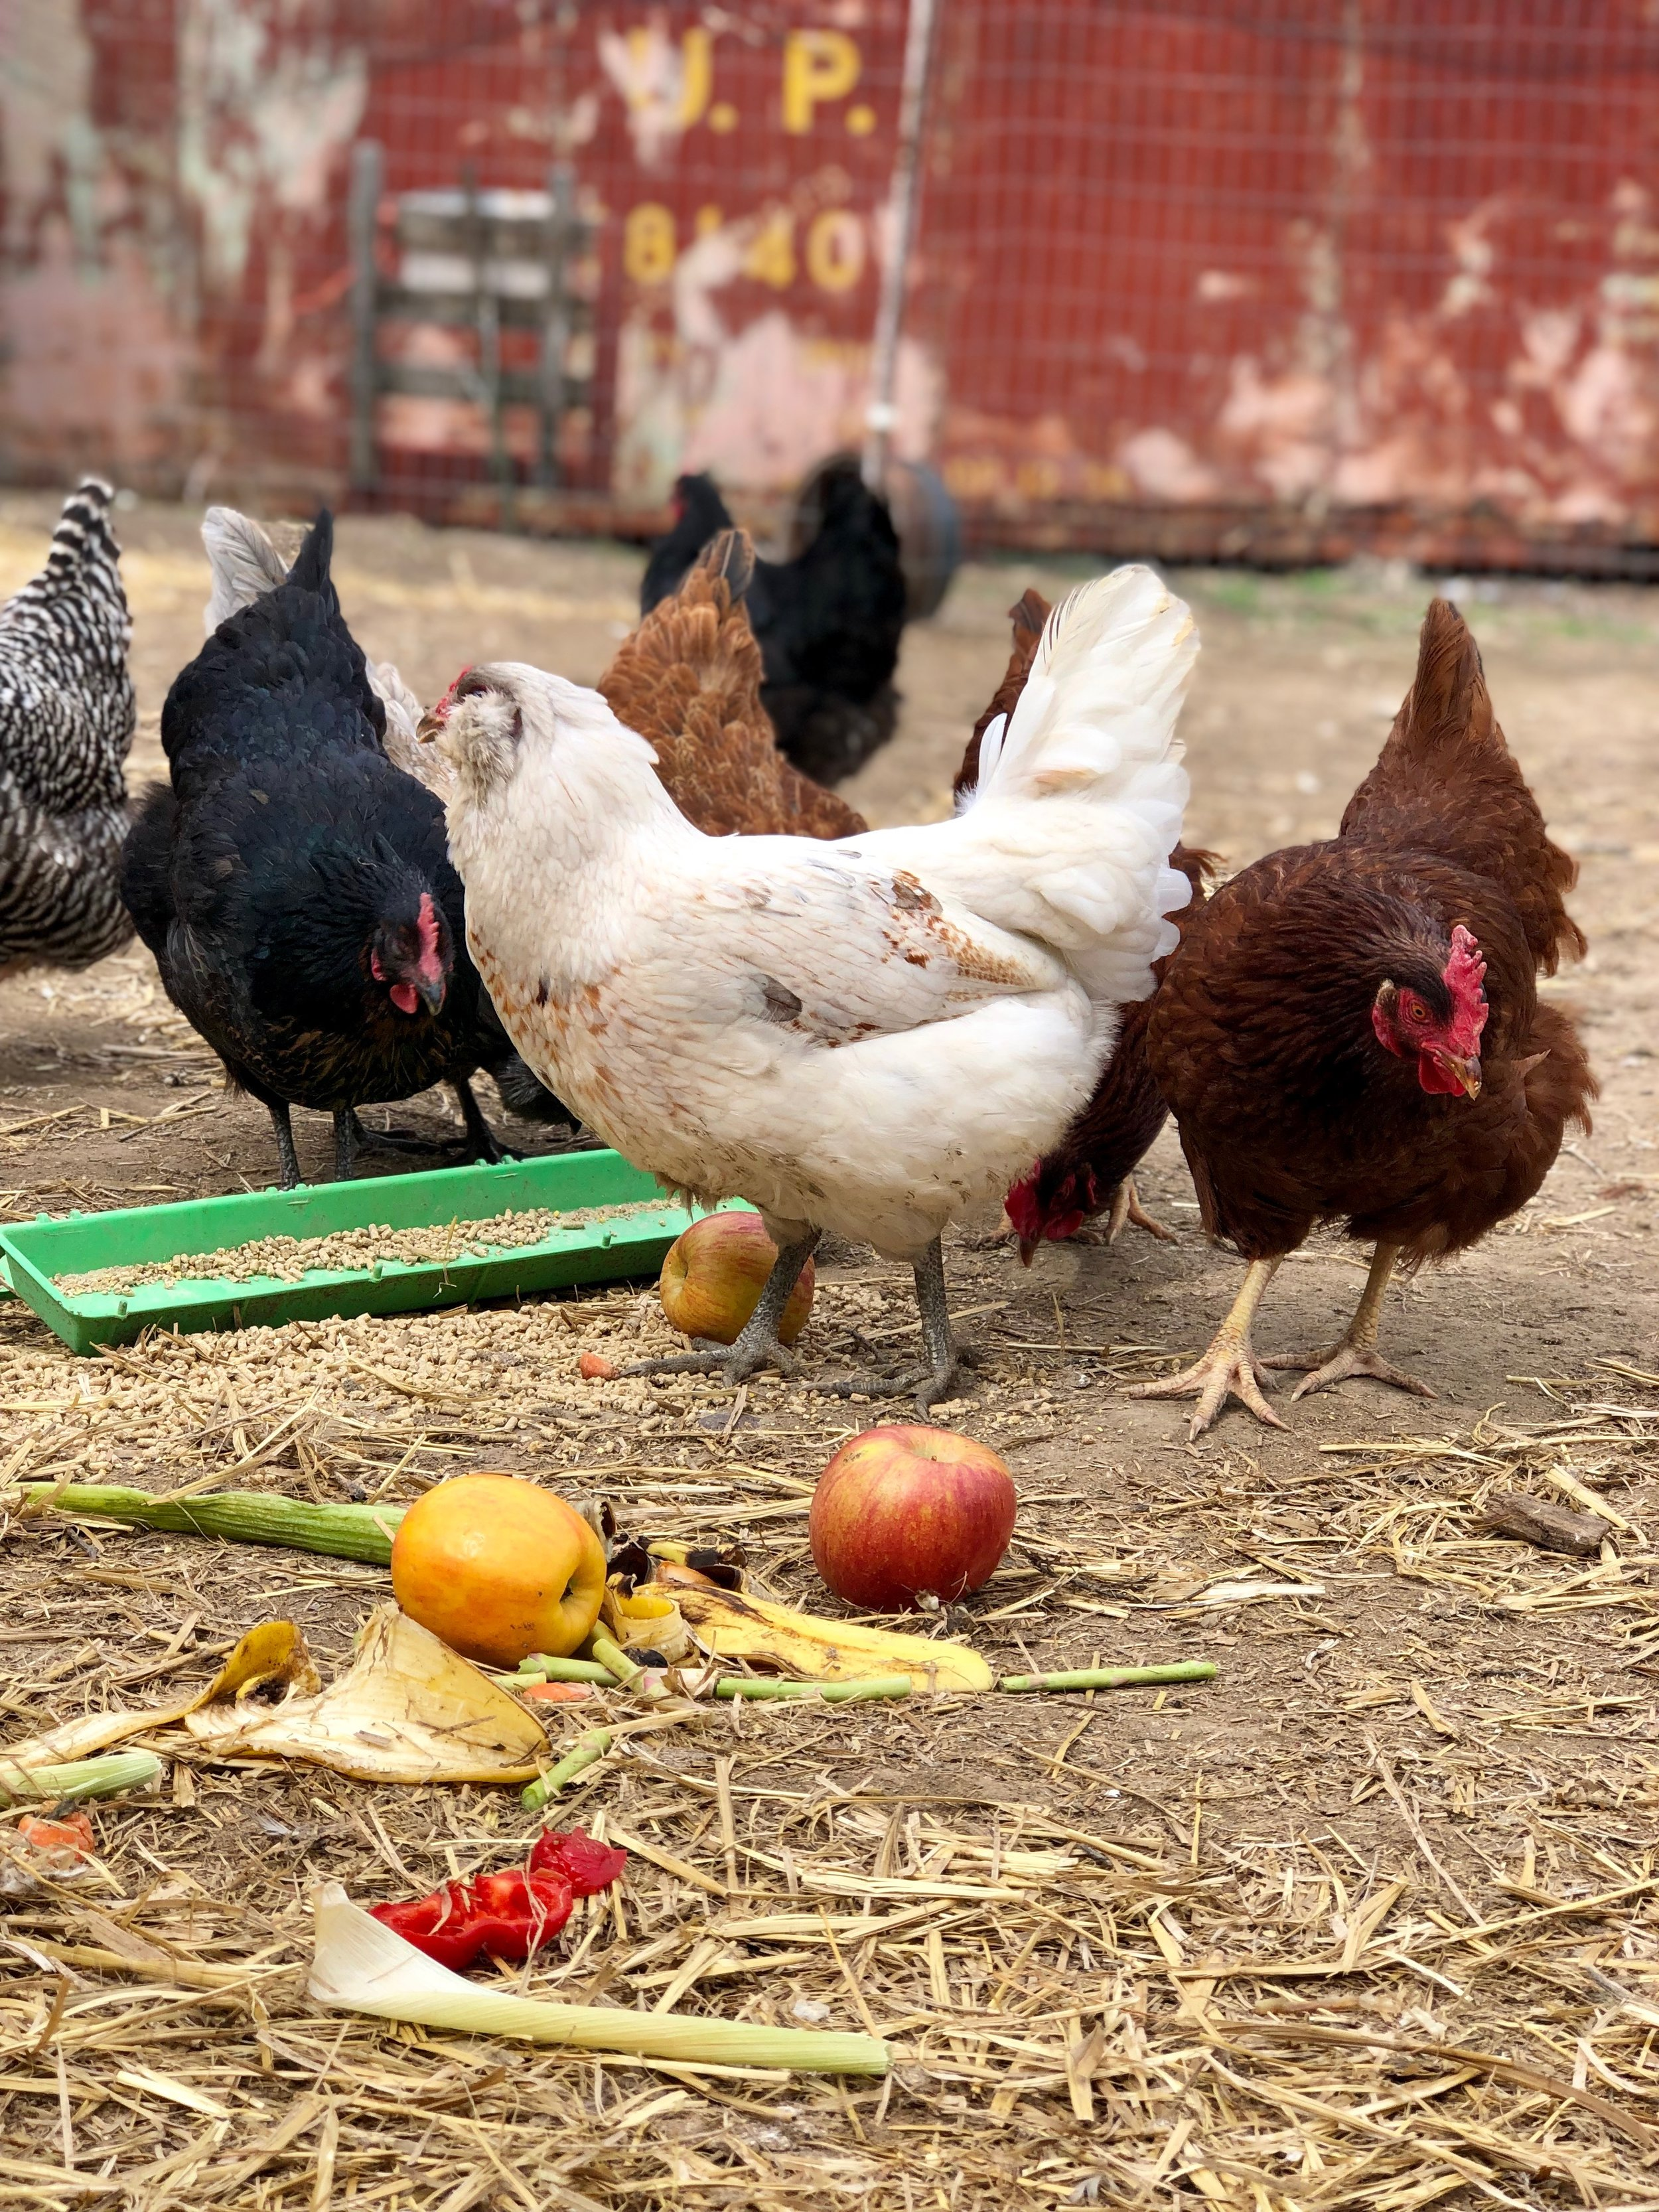 Our chickens eat so many delicious veggies!